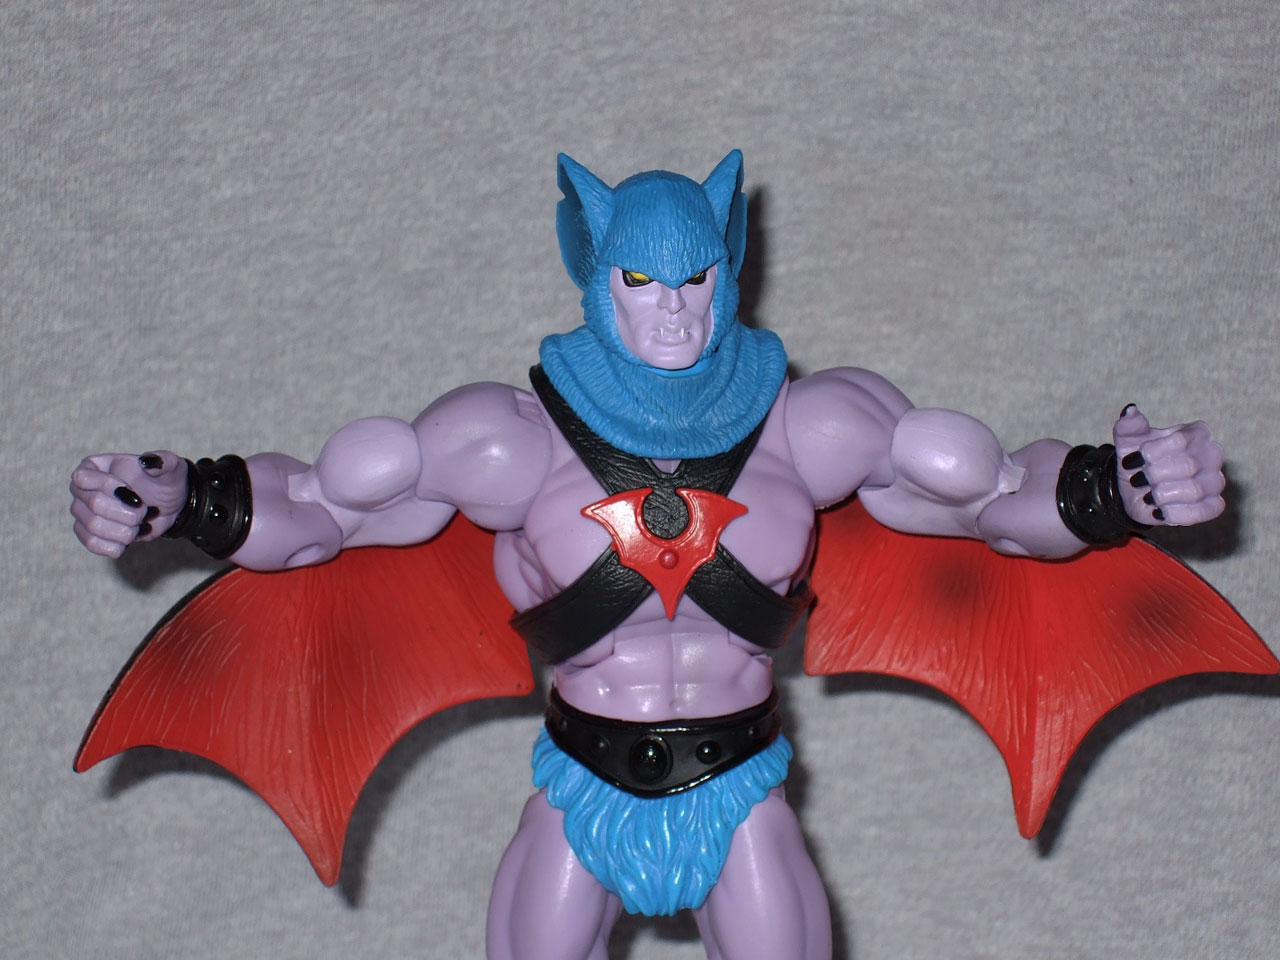 Doc Thomas Reviews > Batros (Masters of the Universe Classics, Mattel)